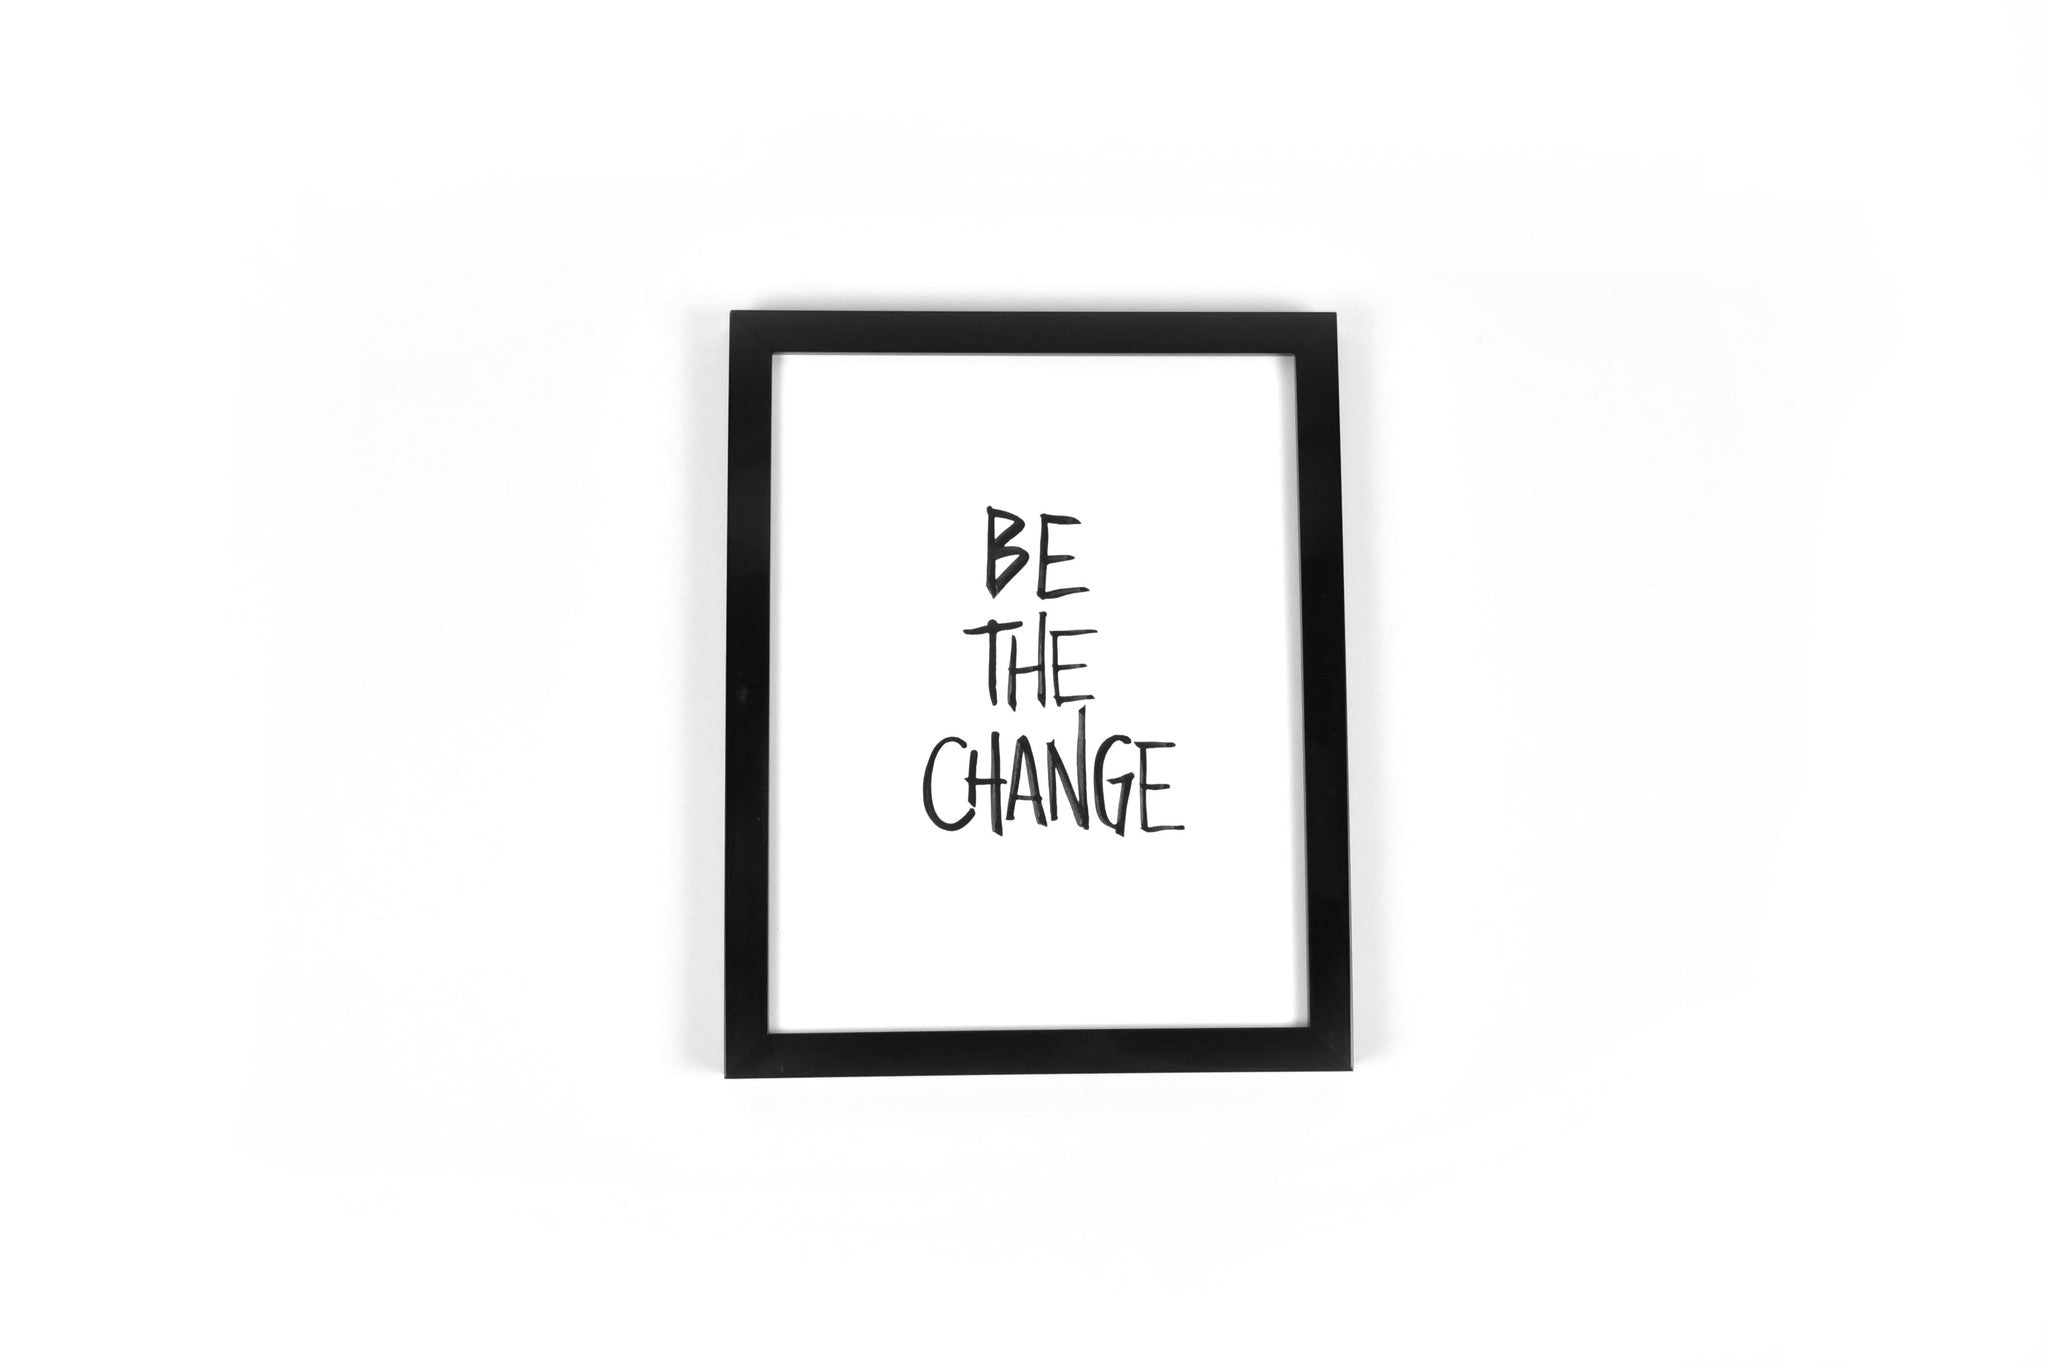 BE THE CHANGE // Imprimé // Art Print